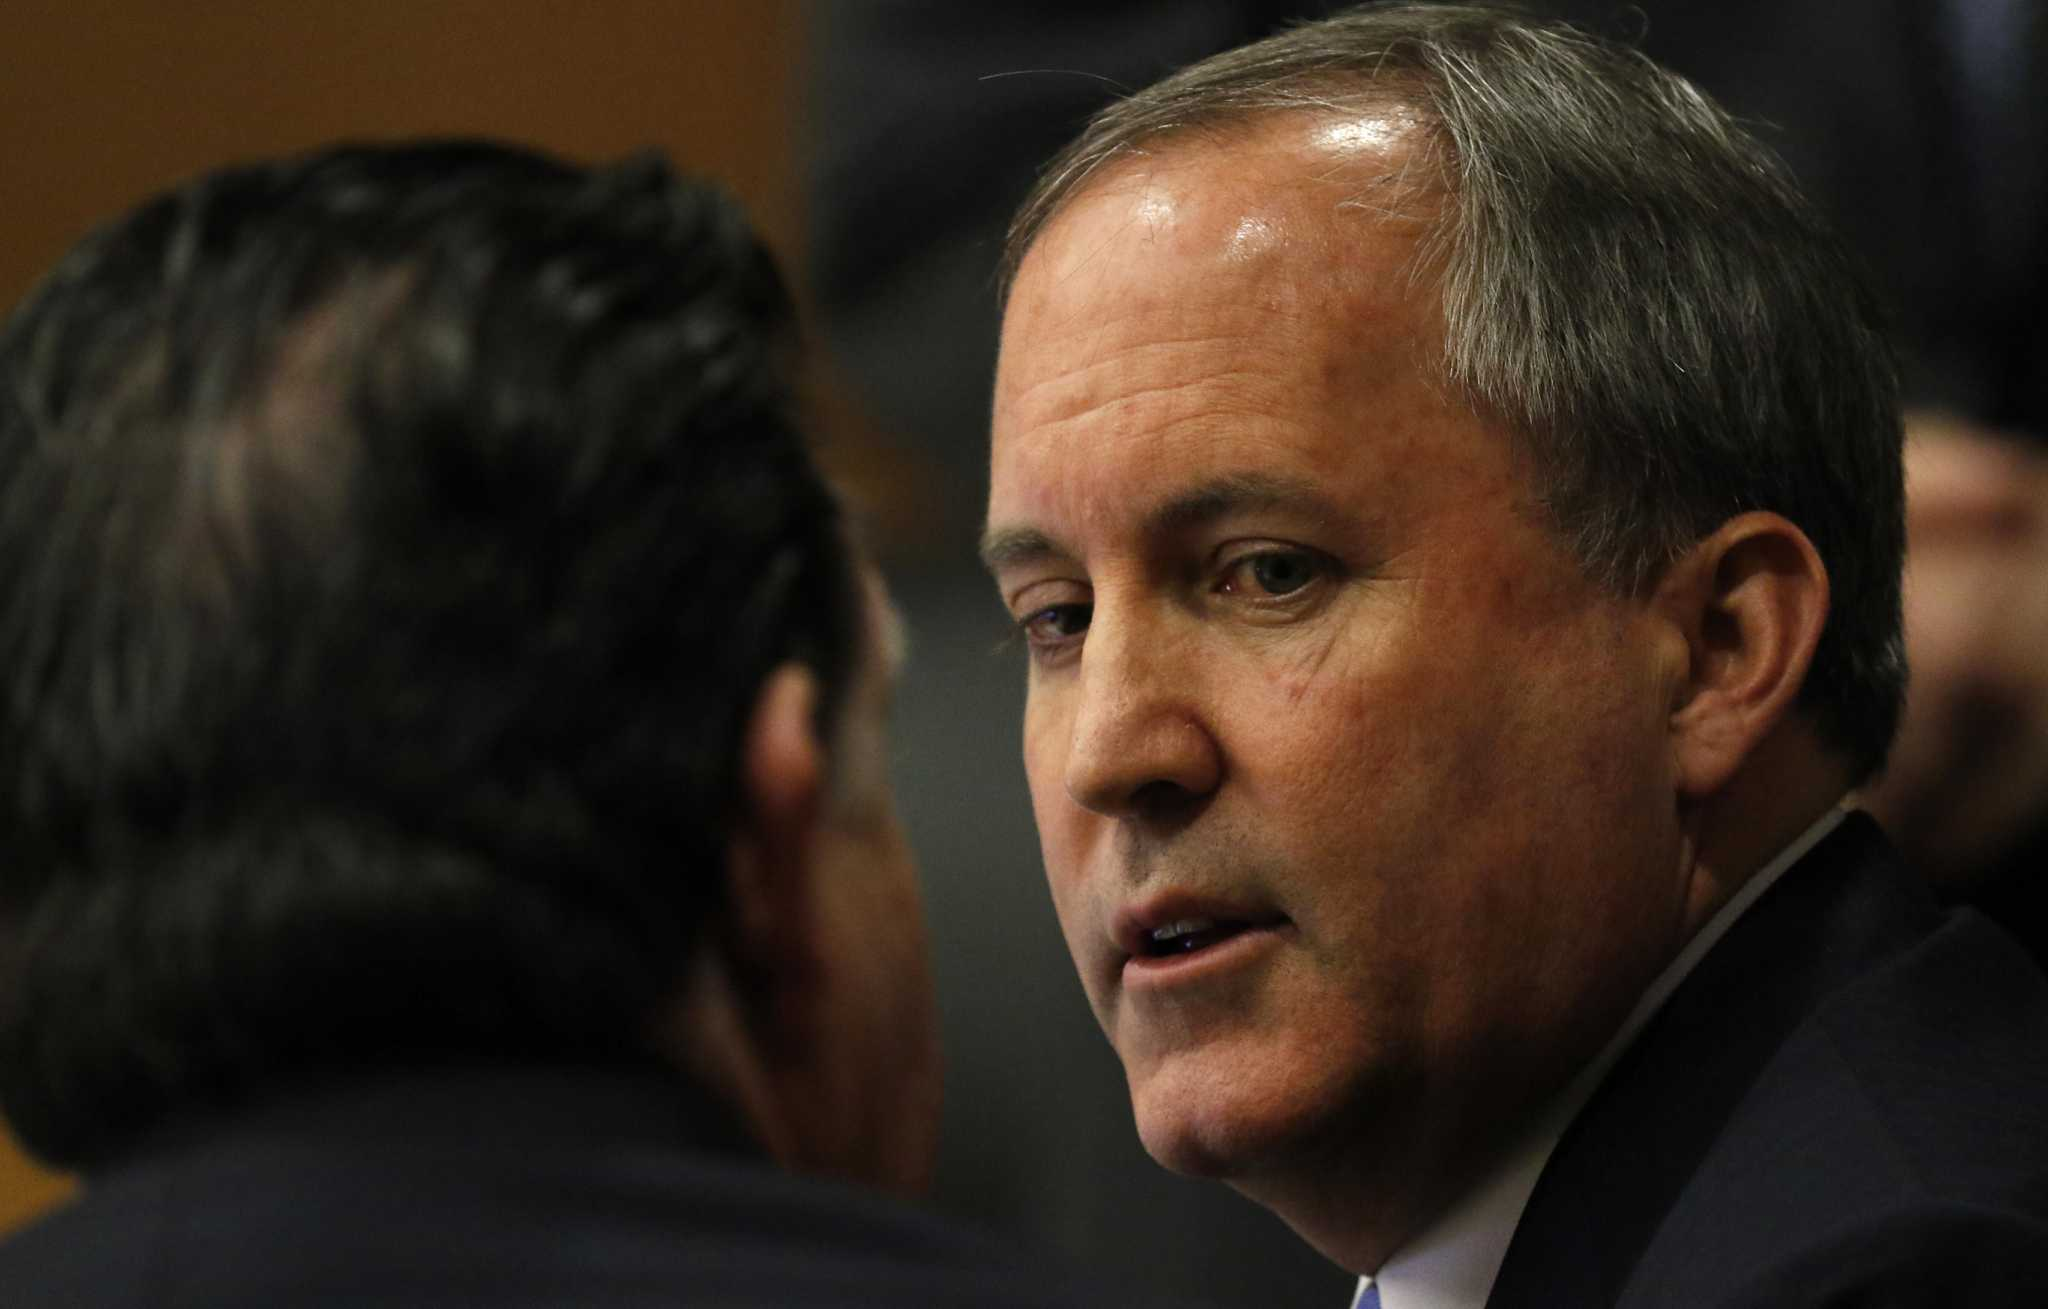 Bill would give new powers to embattled Attorney General Ken Paxton